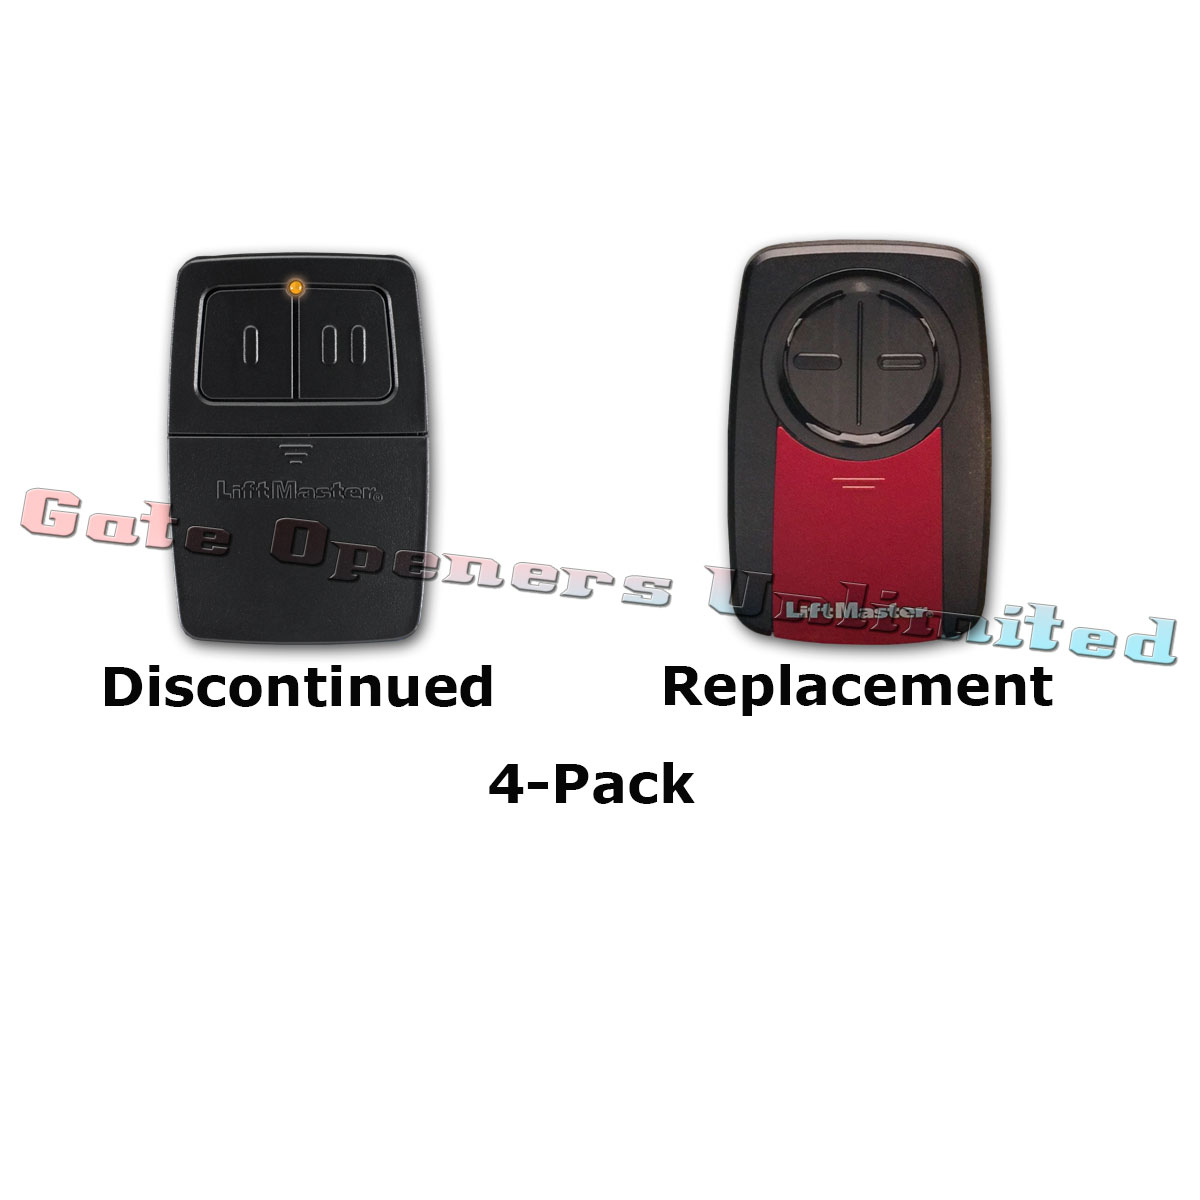 Liftmaster 375LM 4 Pack Universal 2 Button Remote Control